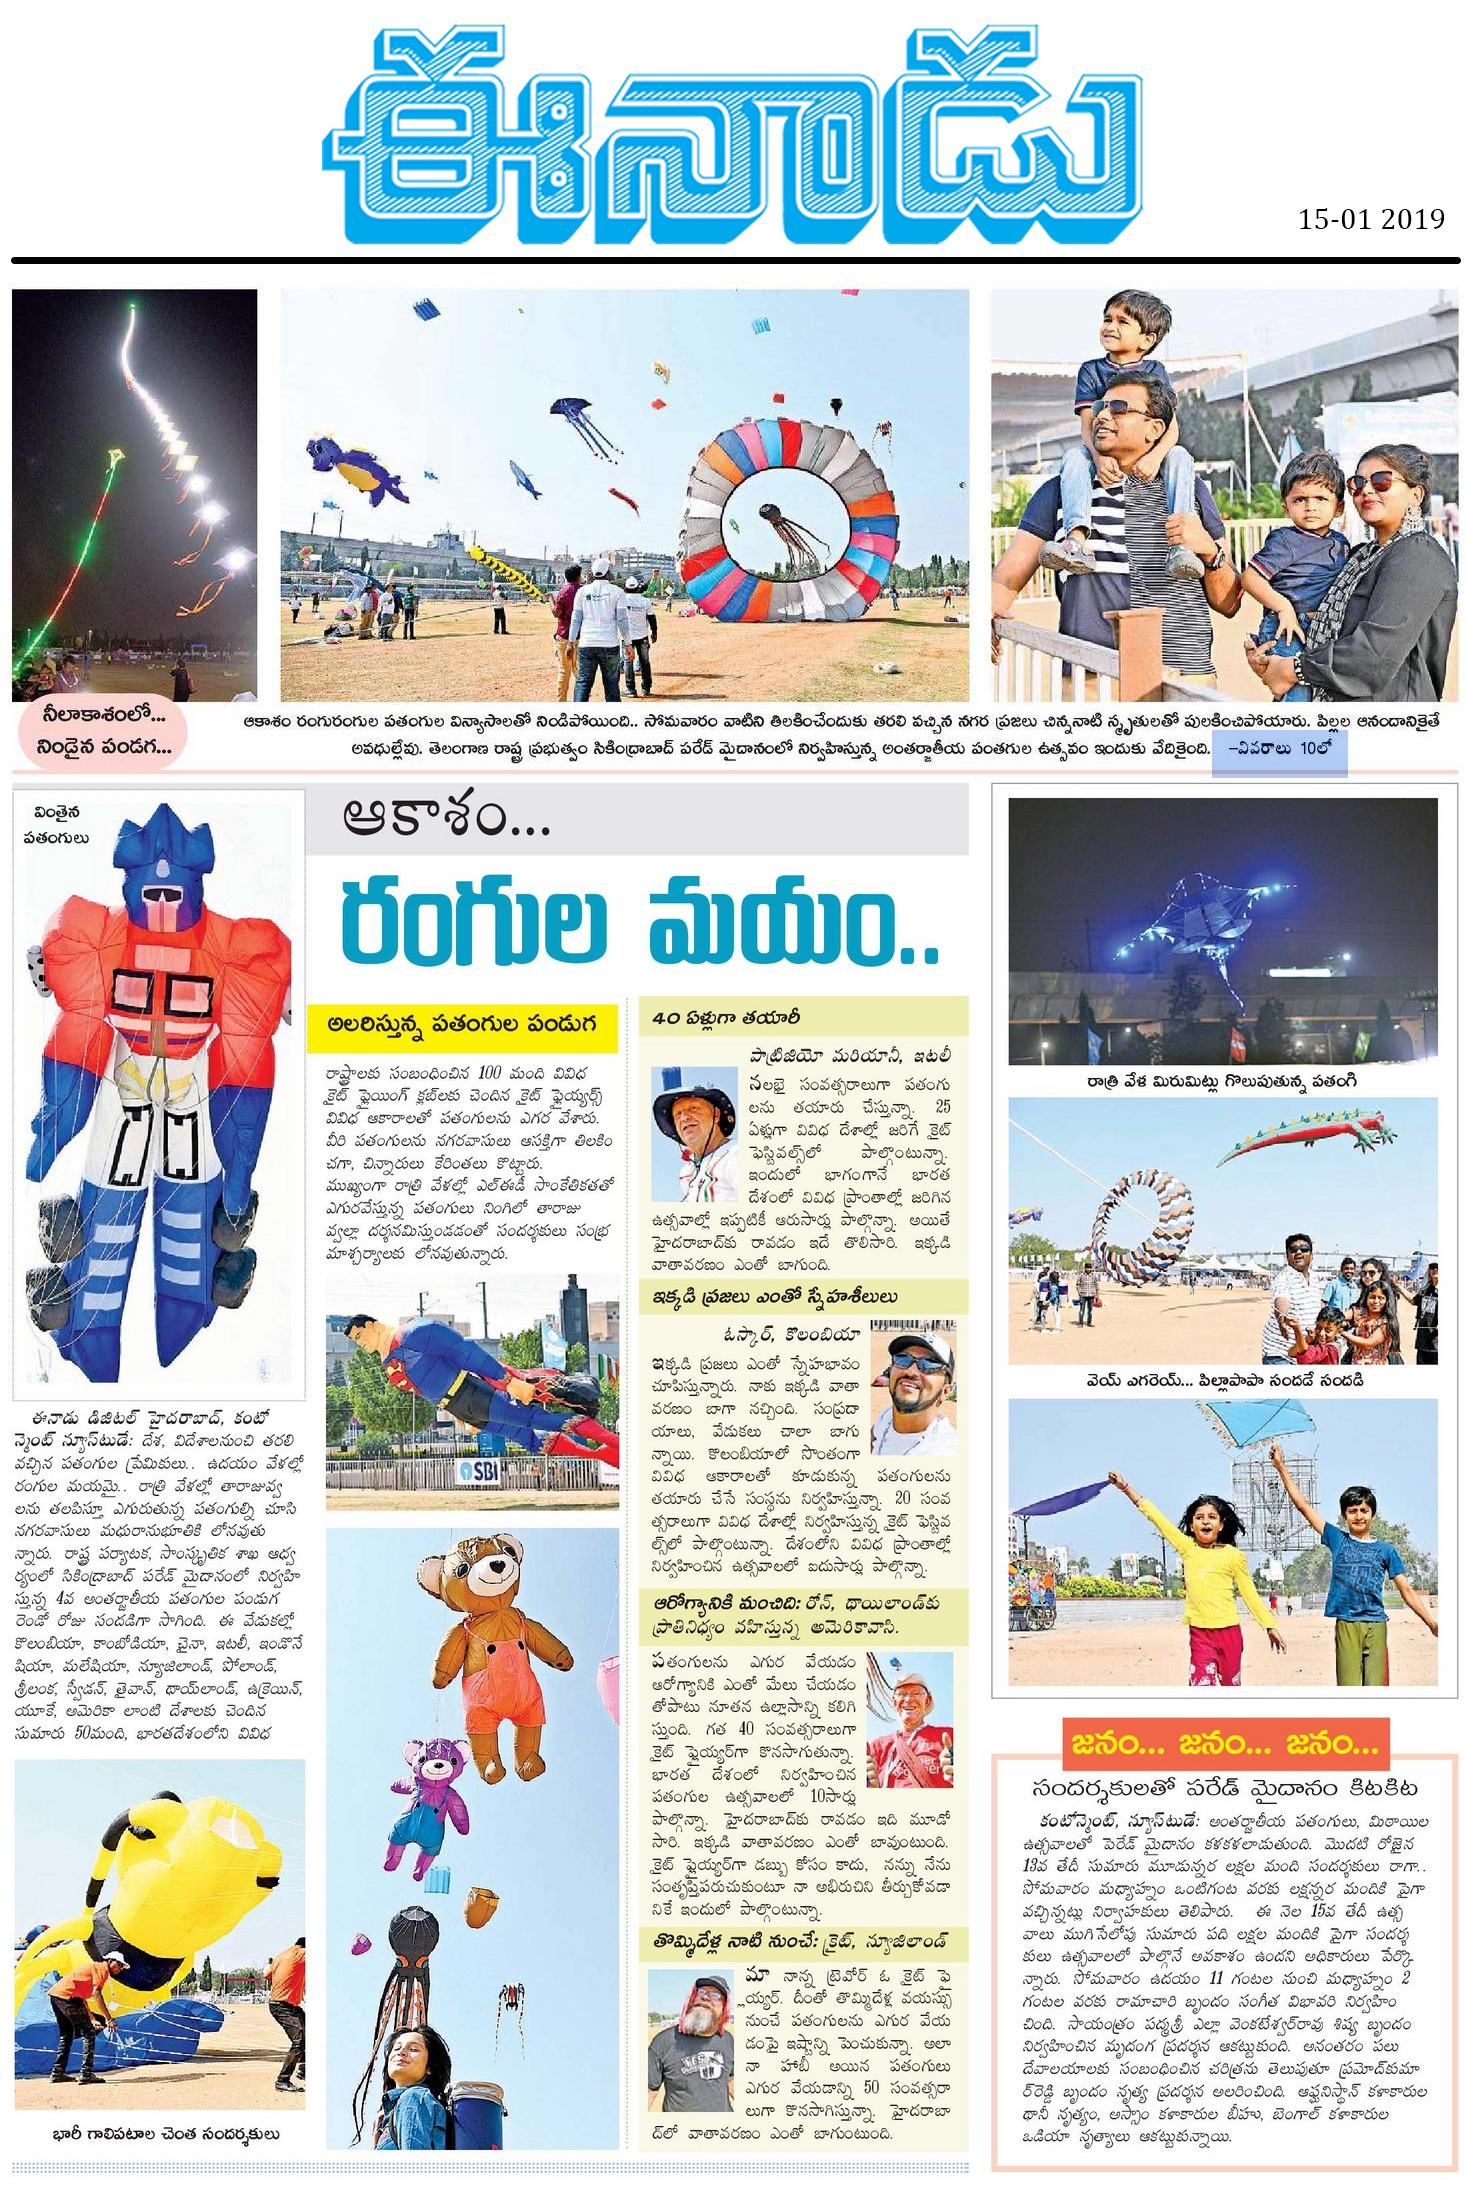 Visit Telangana - Official Tourism Information for Telangana